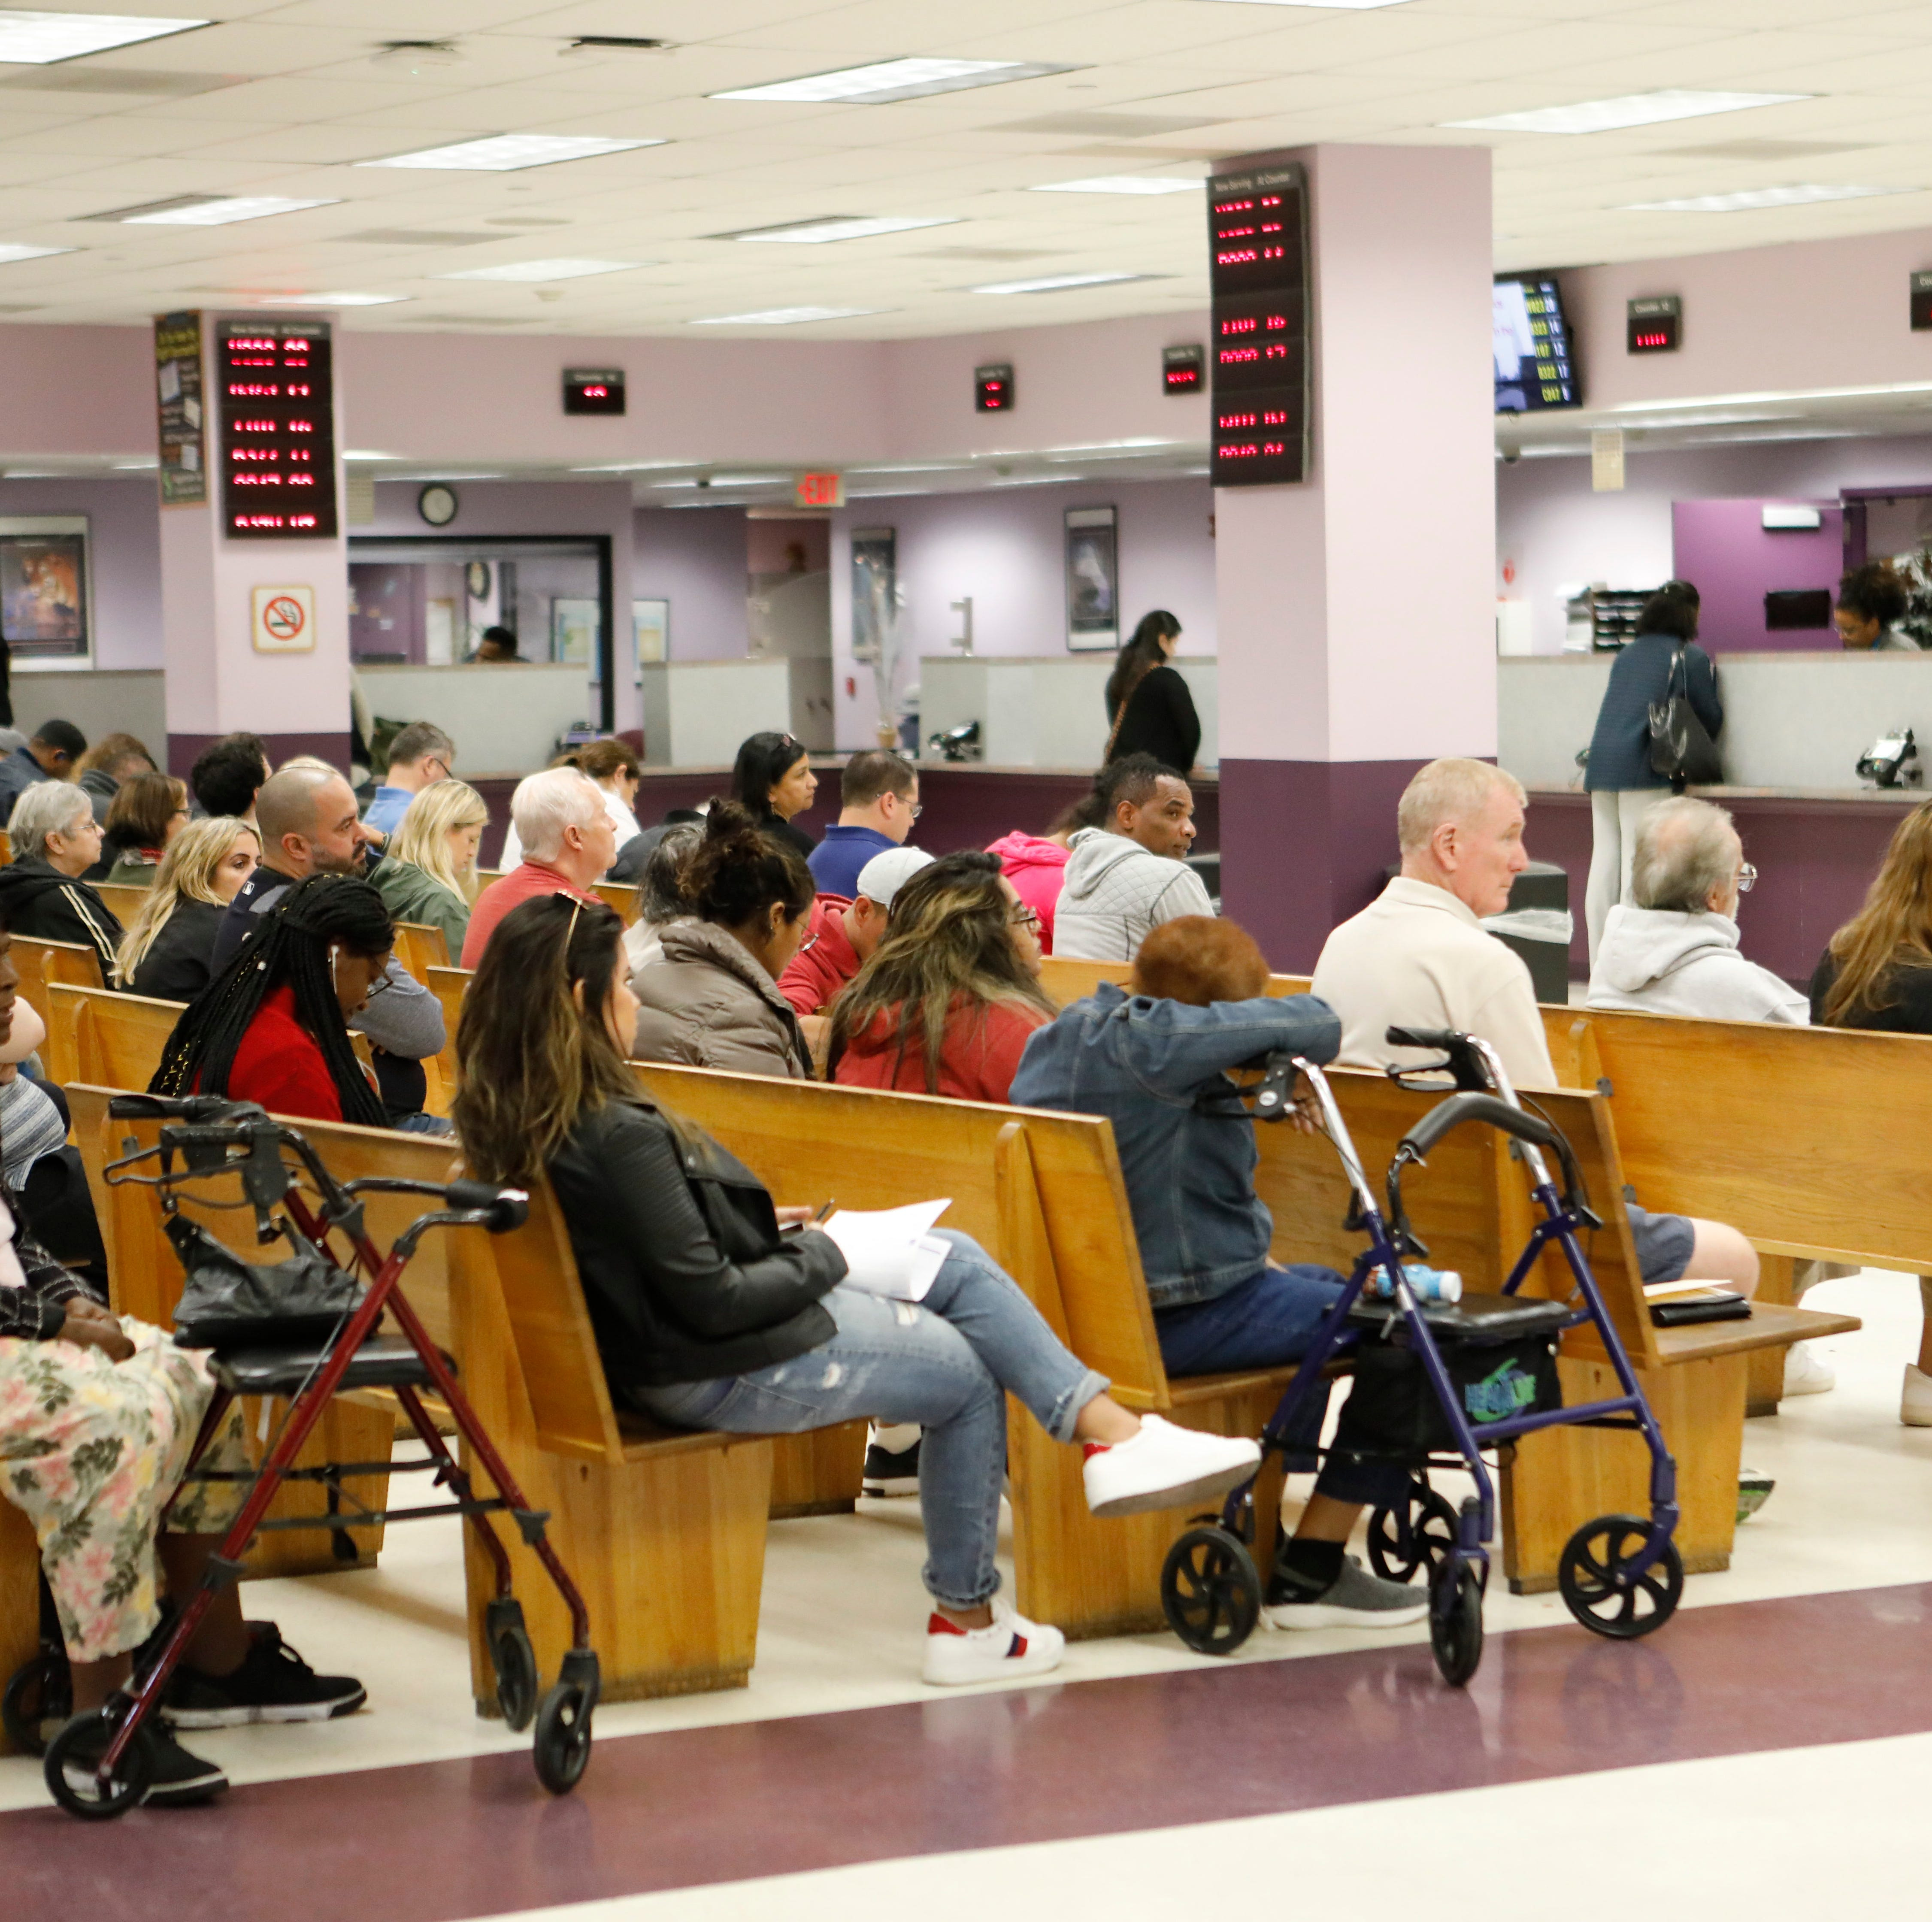 People have been complaining about the long waits while conducting business with the White Plains Department of Motor Vehicles on Oct. 12, 2018. The people that The Journal News spoke to have been averaging 2 hours waits.